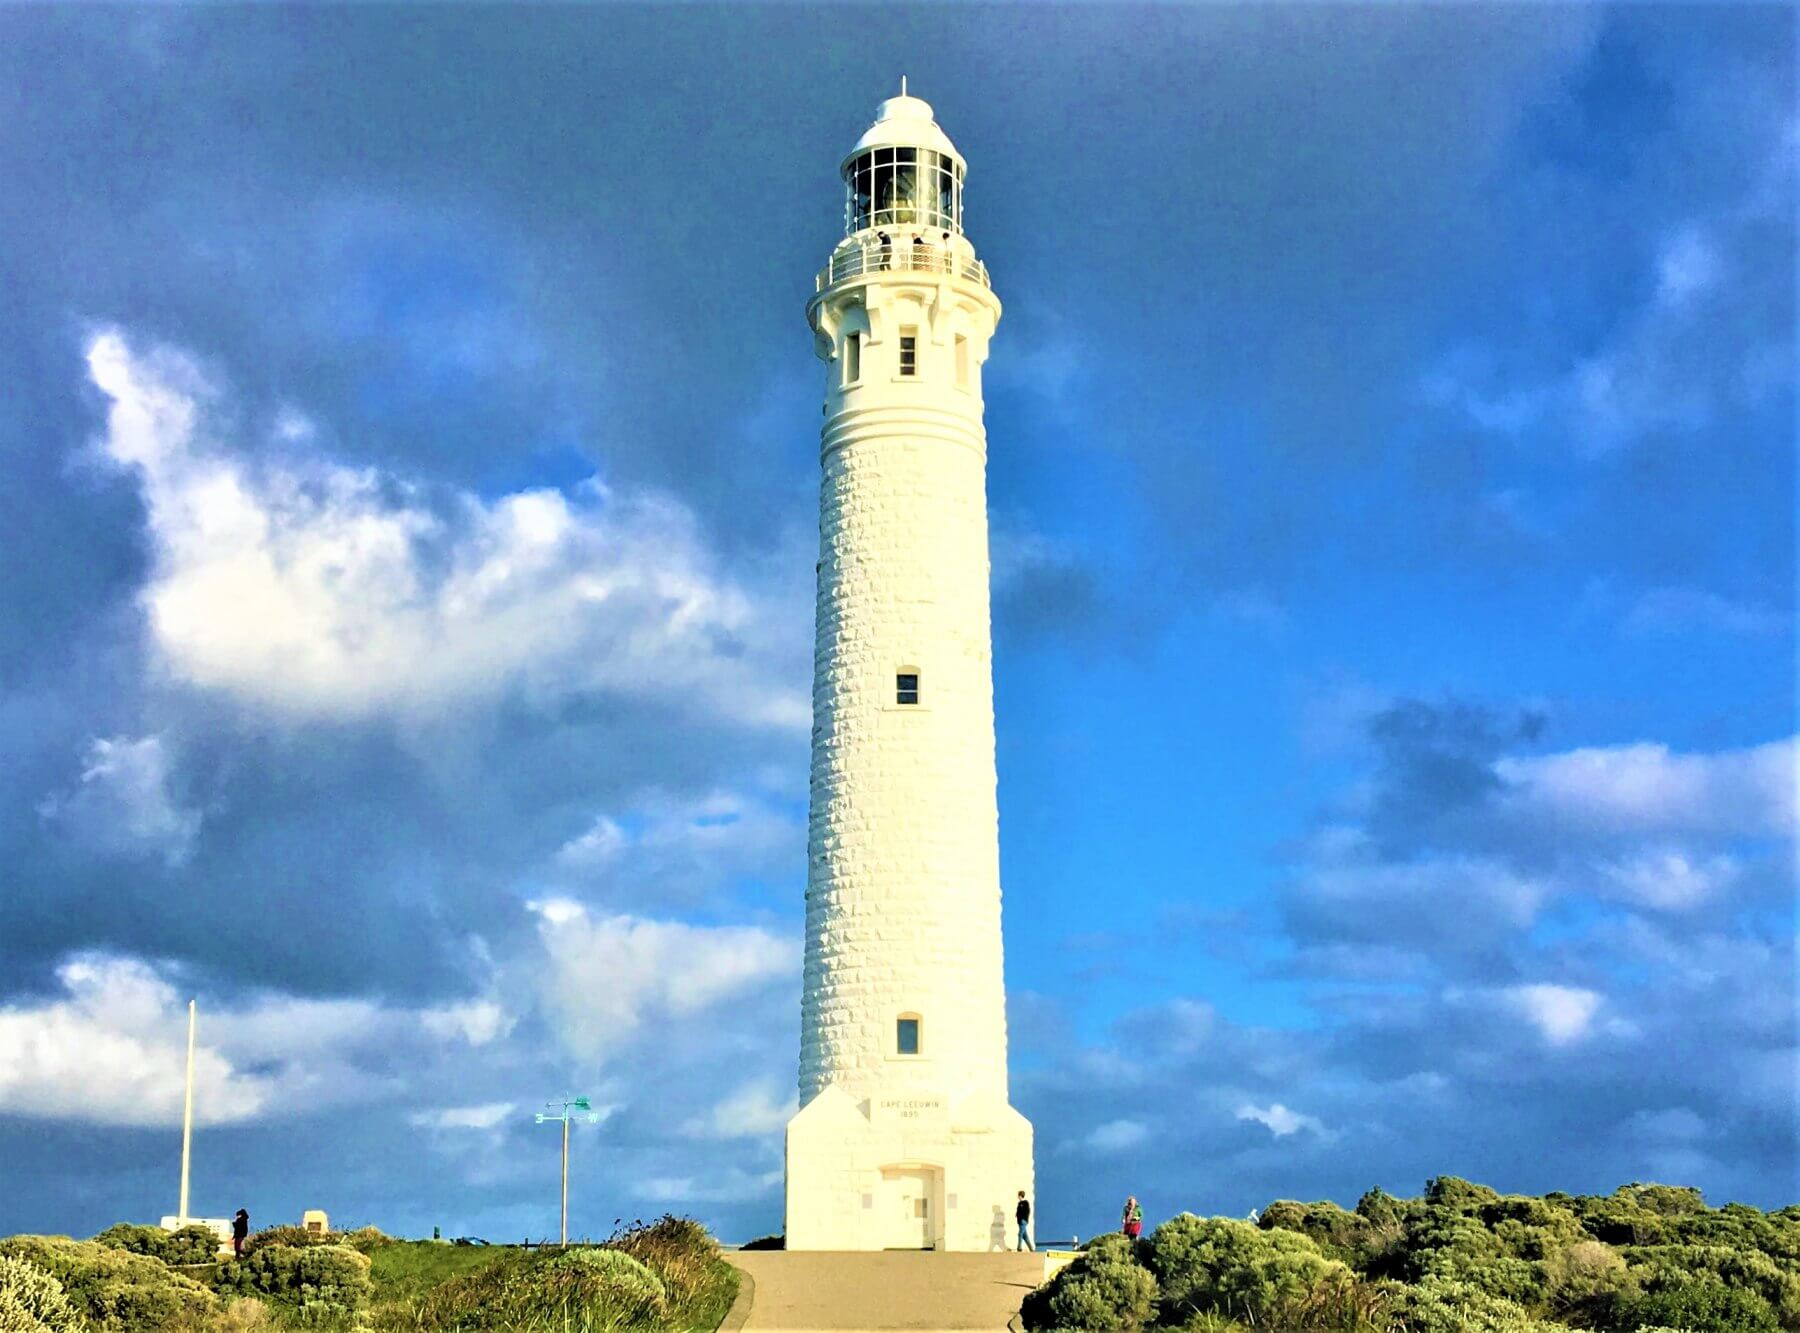 Leuchtturm in Australien am Cape Leeuwin